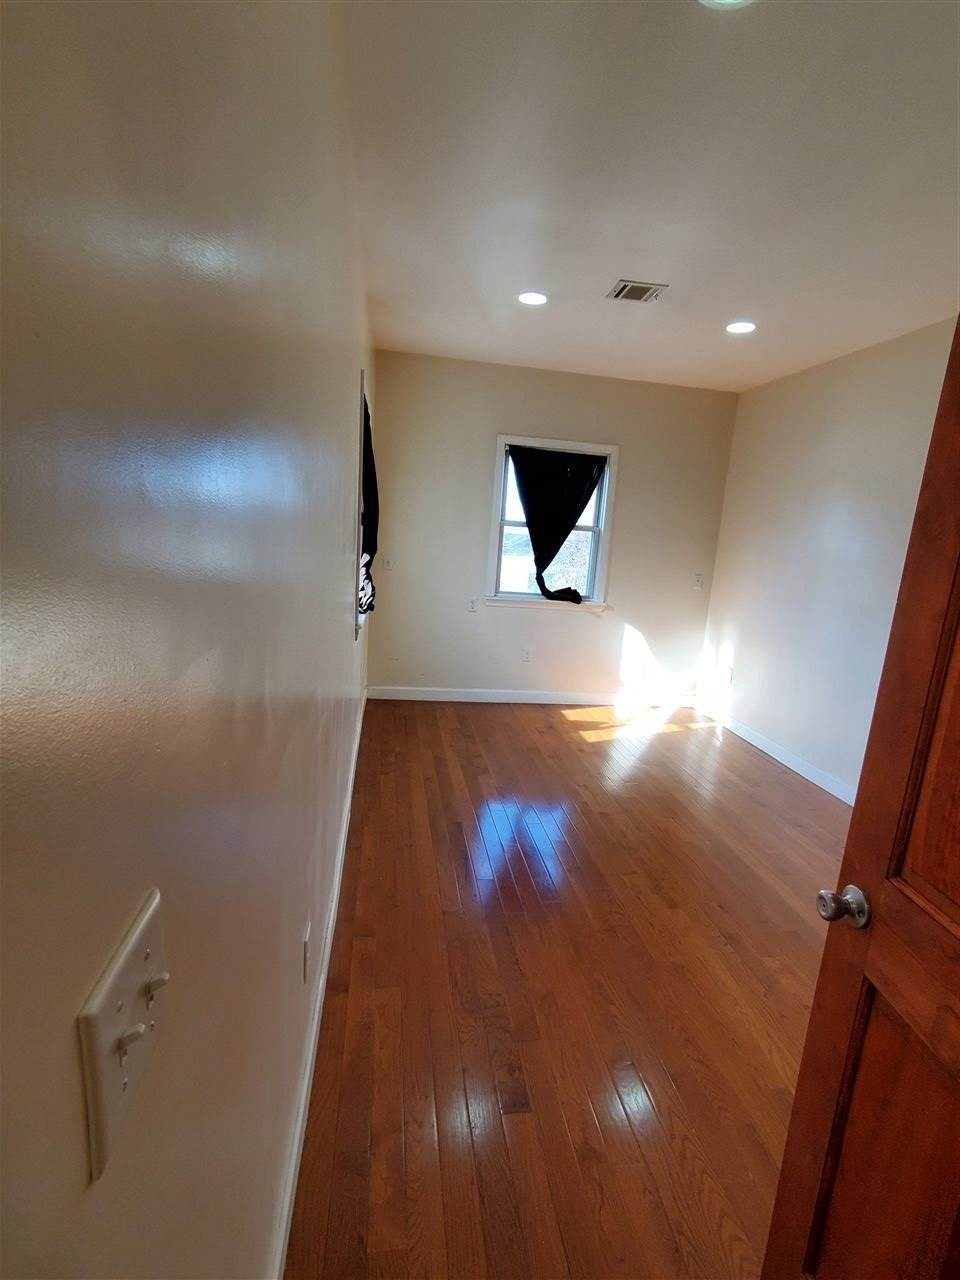 4. Single Family Home for Rent at 27 NELSON AVENUE #APT # Jersey City, New Jersey, 07307 United States